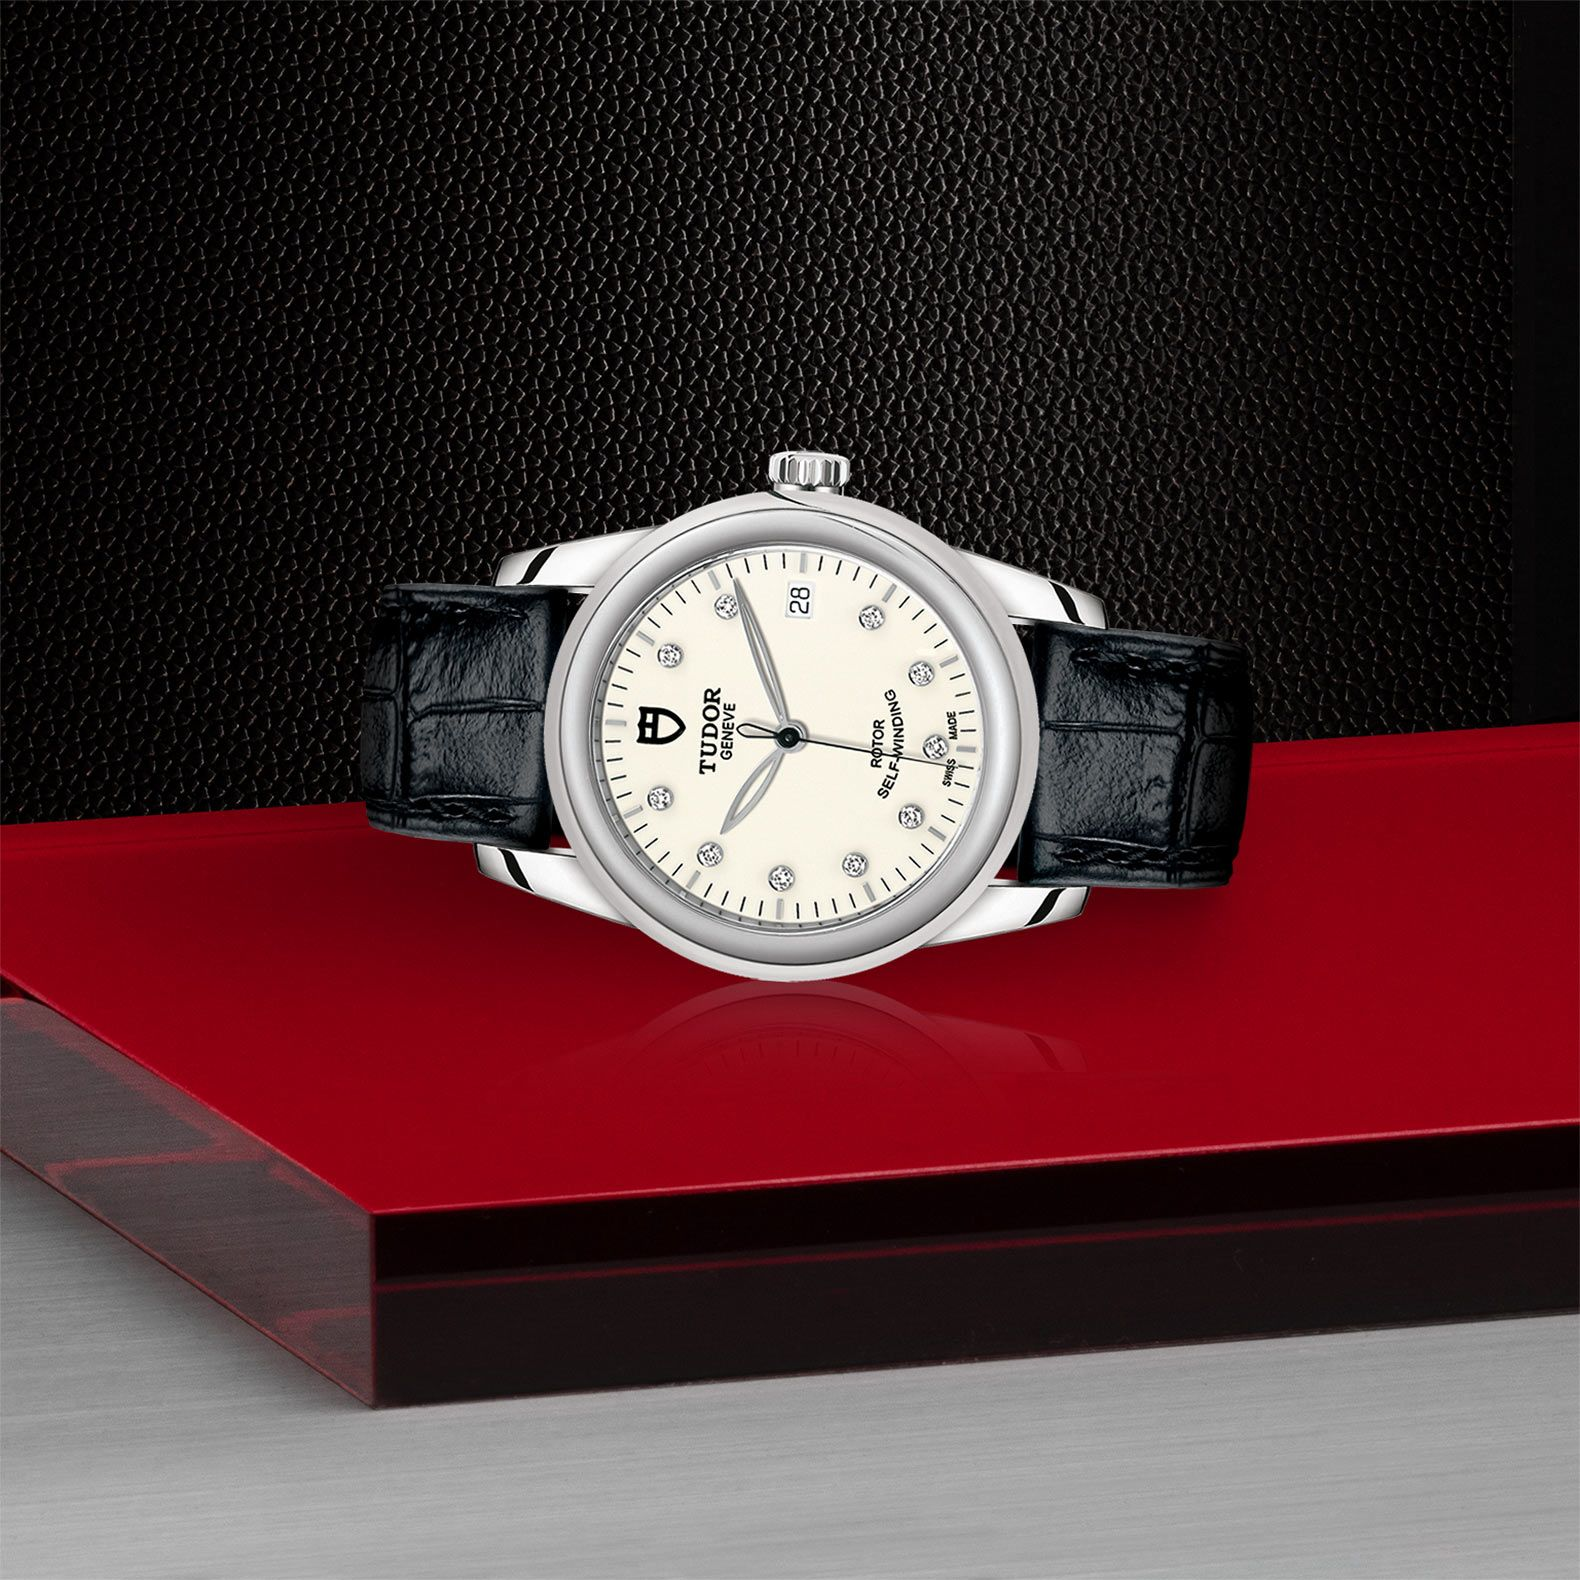 GLAMOUR DATE 36 55000 - 0116